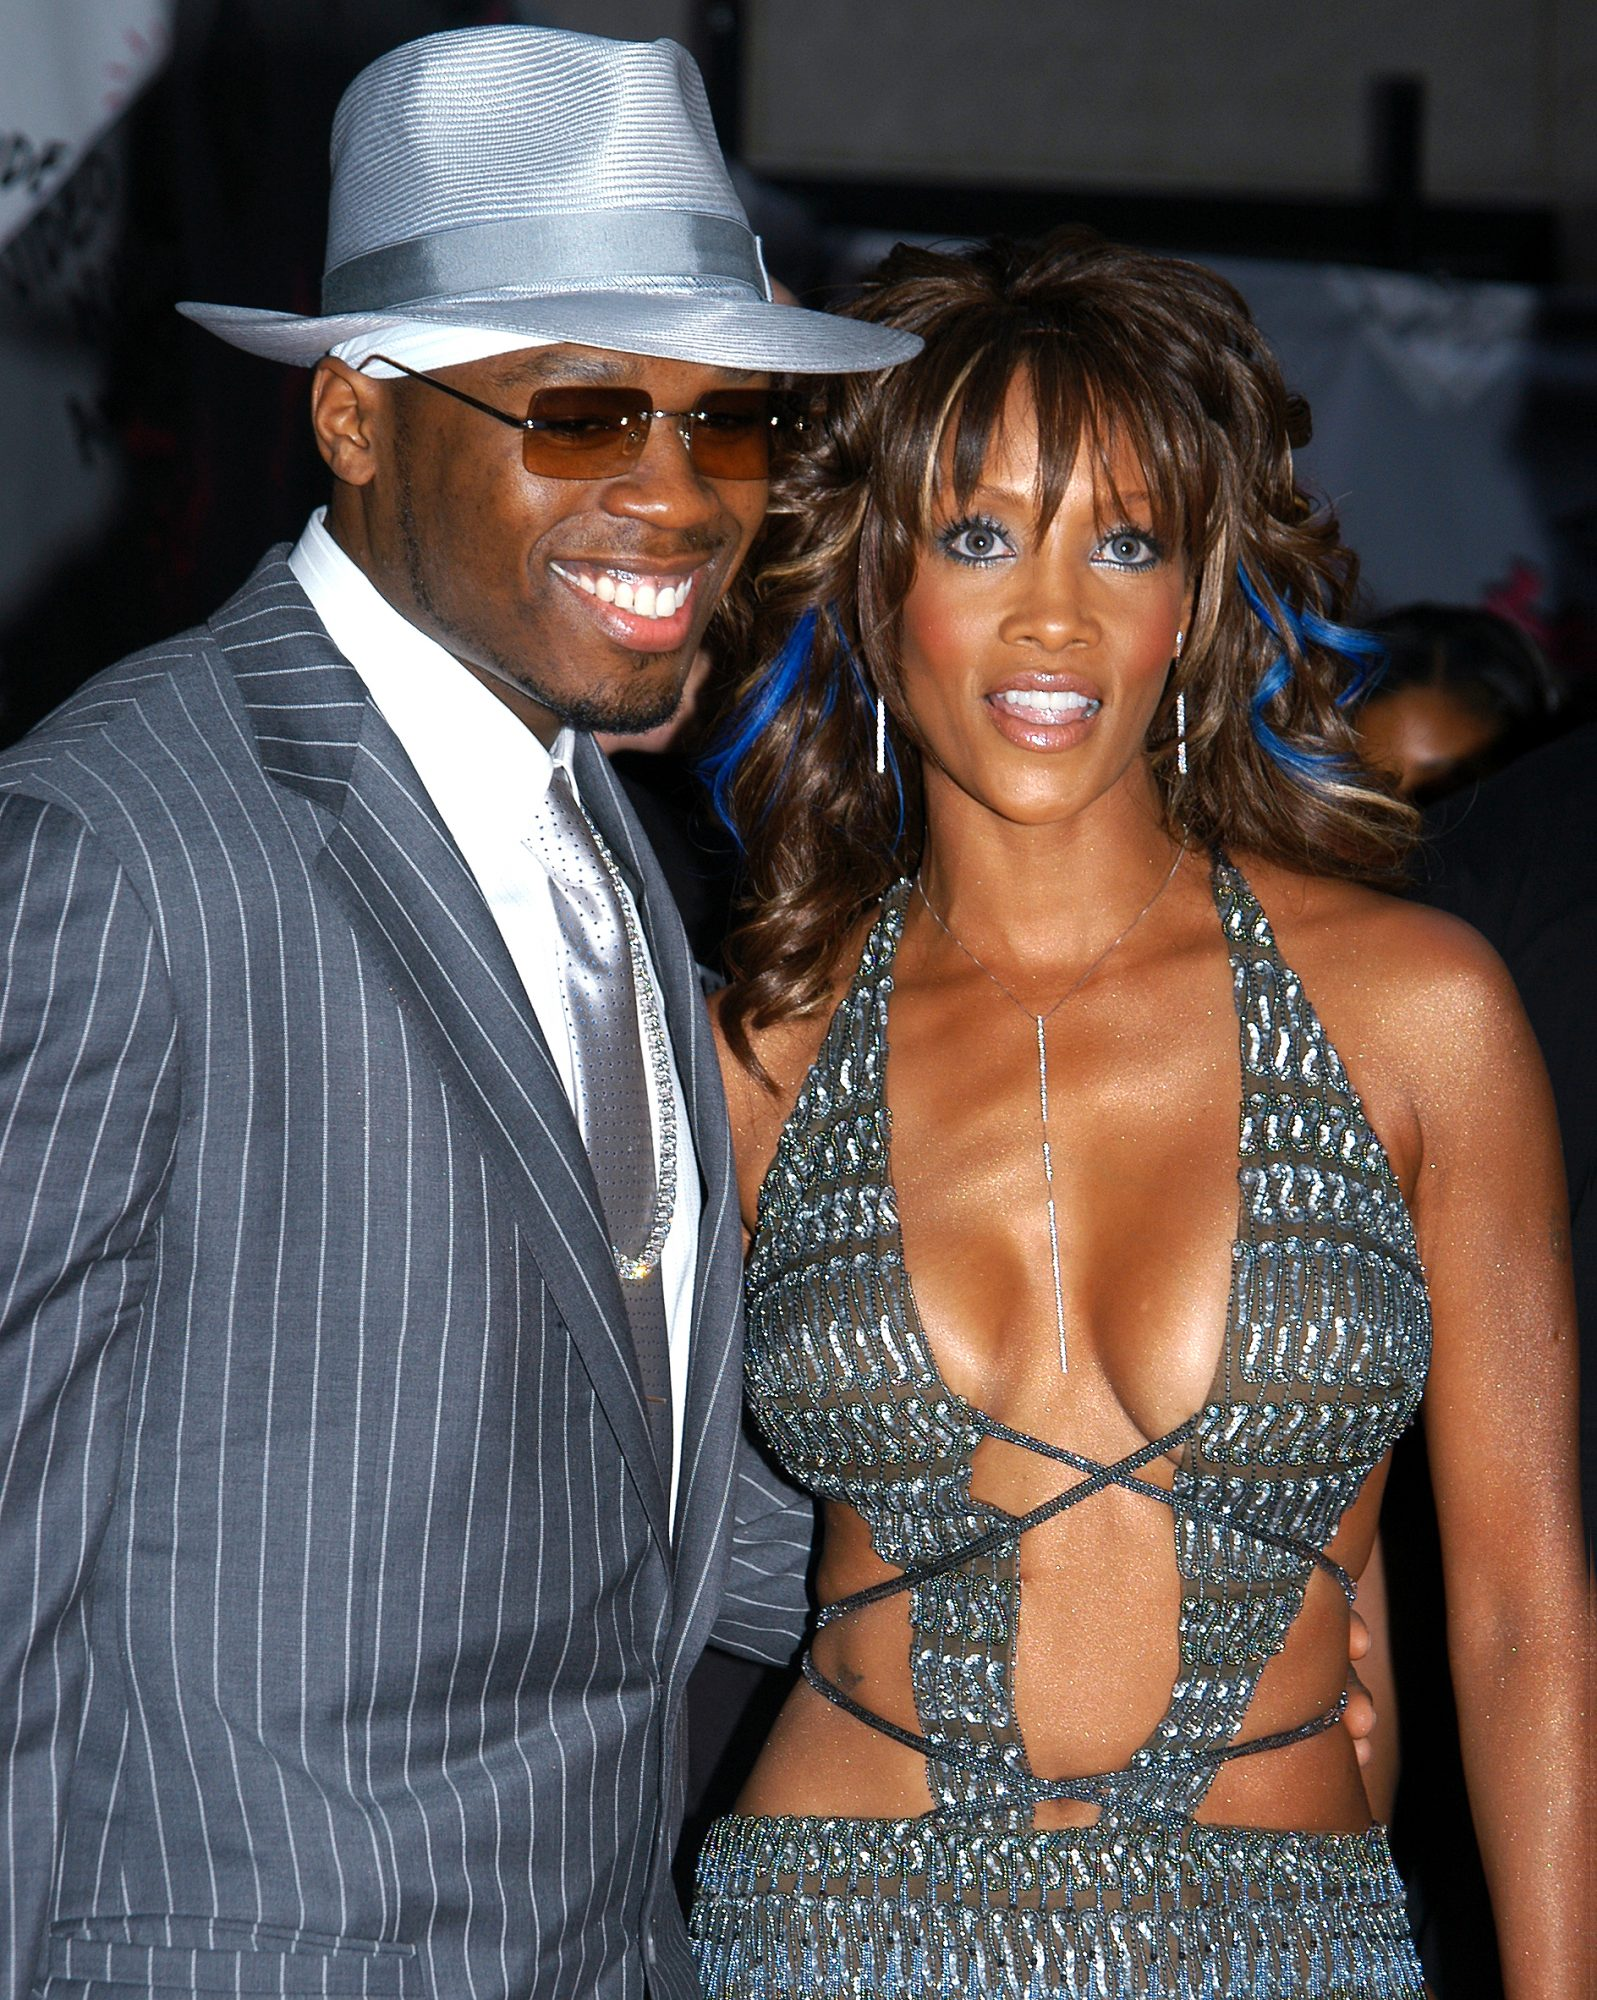 Rapper 50 Cent and Vivica A. Fox arrive at Radio City Music